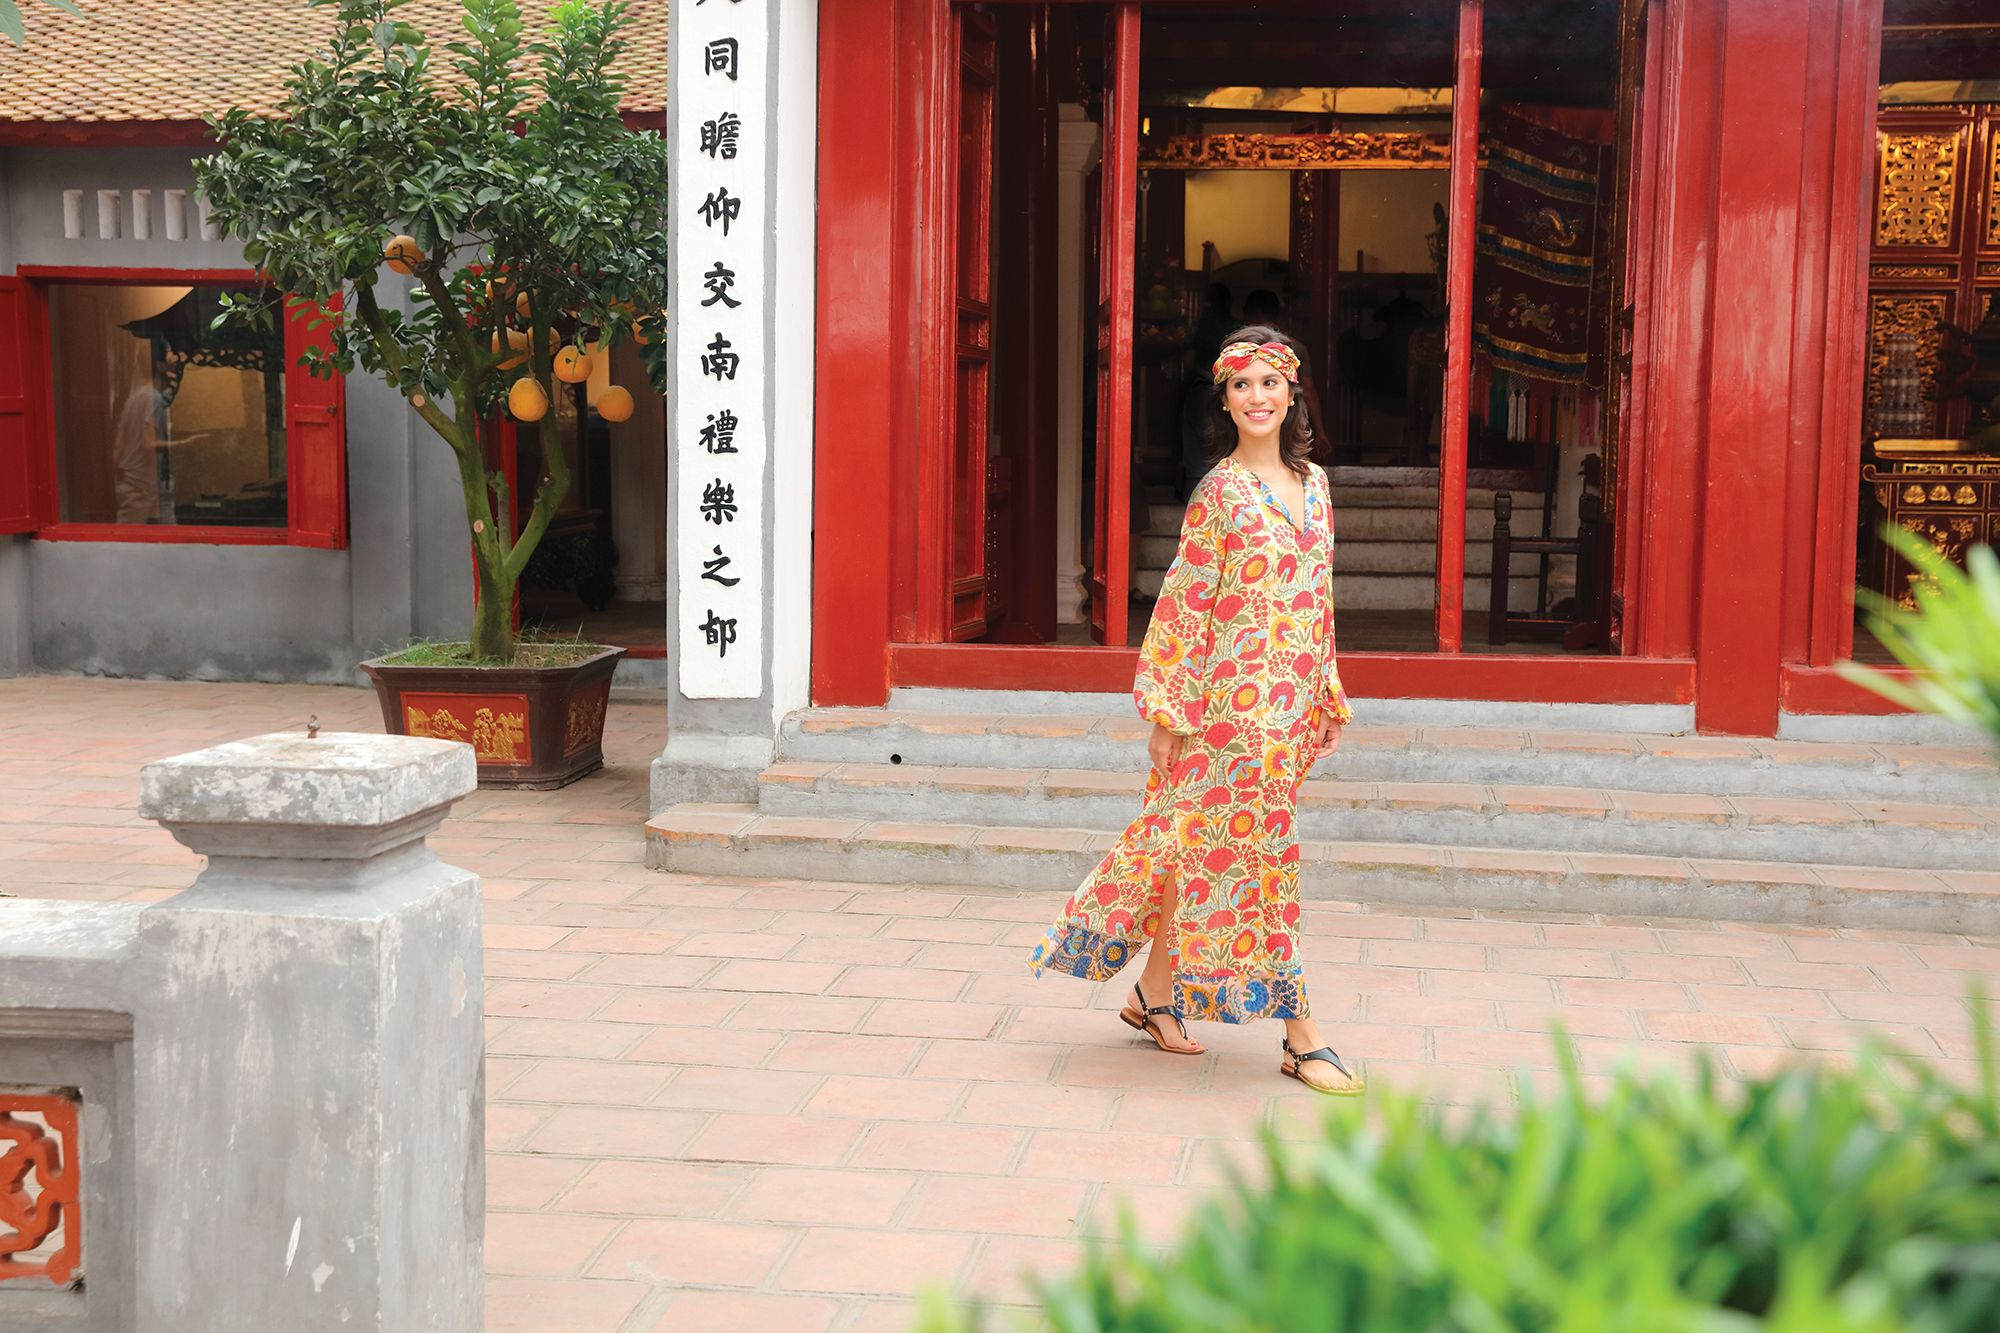 In Search of Lost Time: Marion Branellec de Guzman Explores Hanoi's Must-see Sights